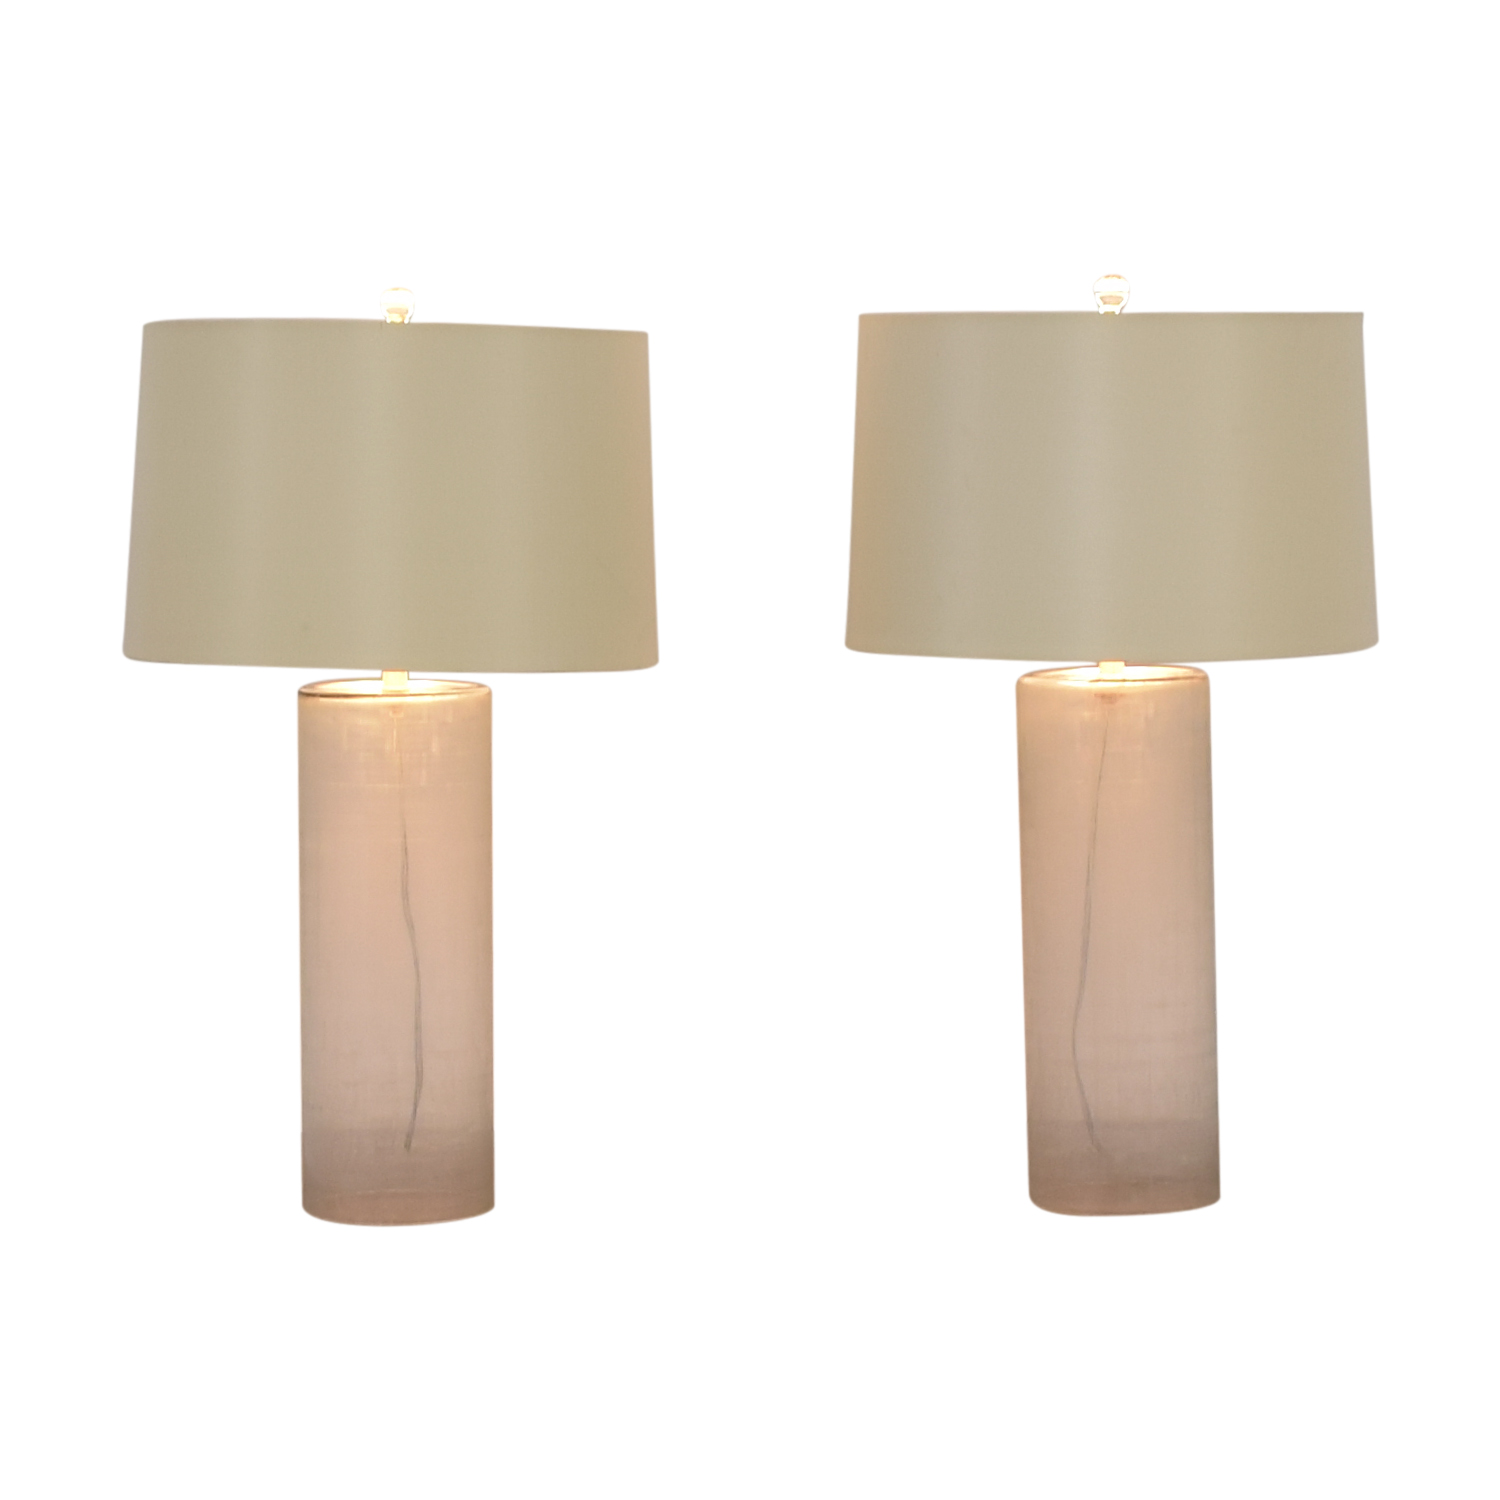 Mitchell Gold + Bob Williams Mitchell Gold + Bob Williams Etched Glass Table Lamps coupon